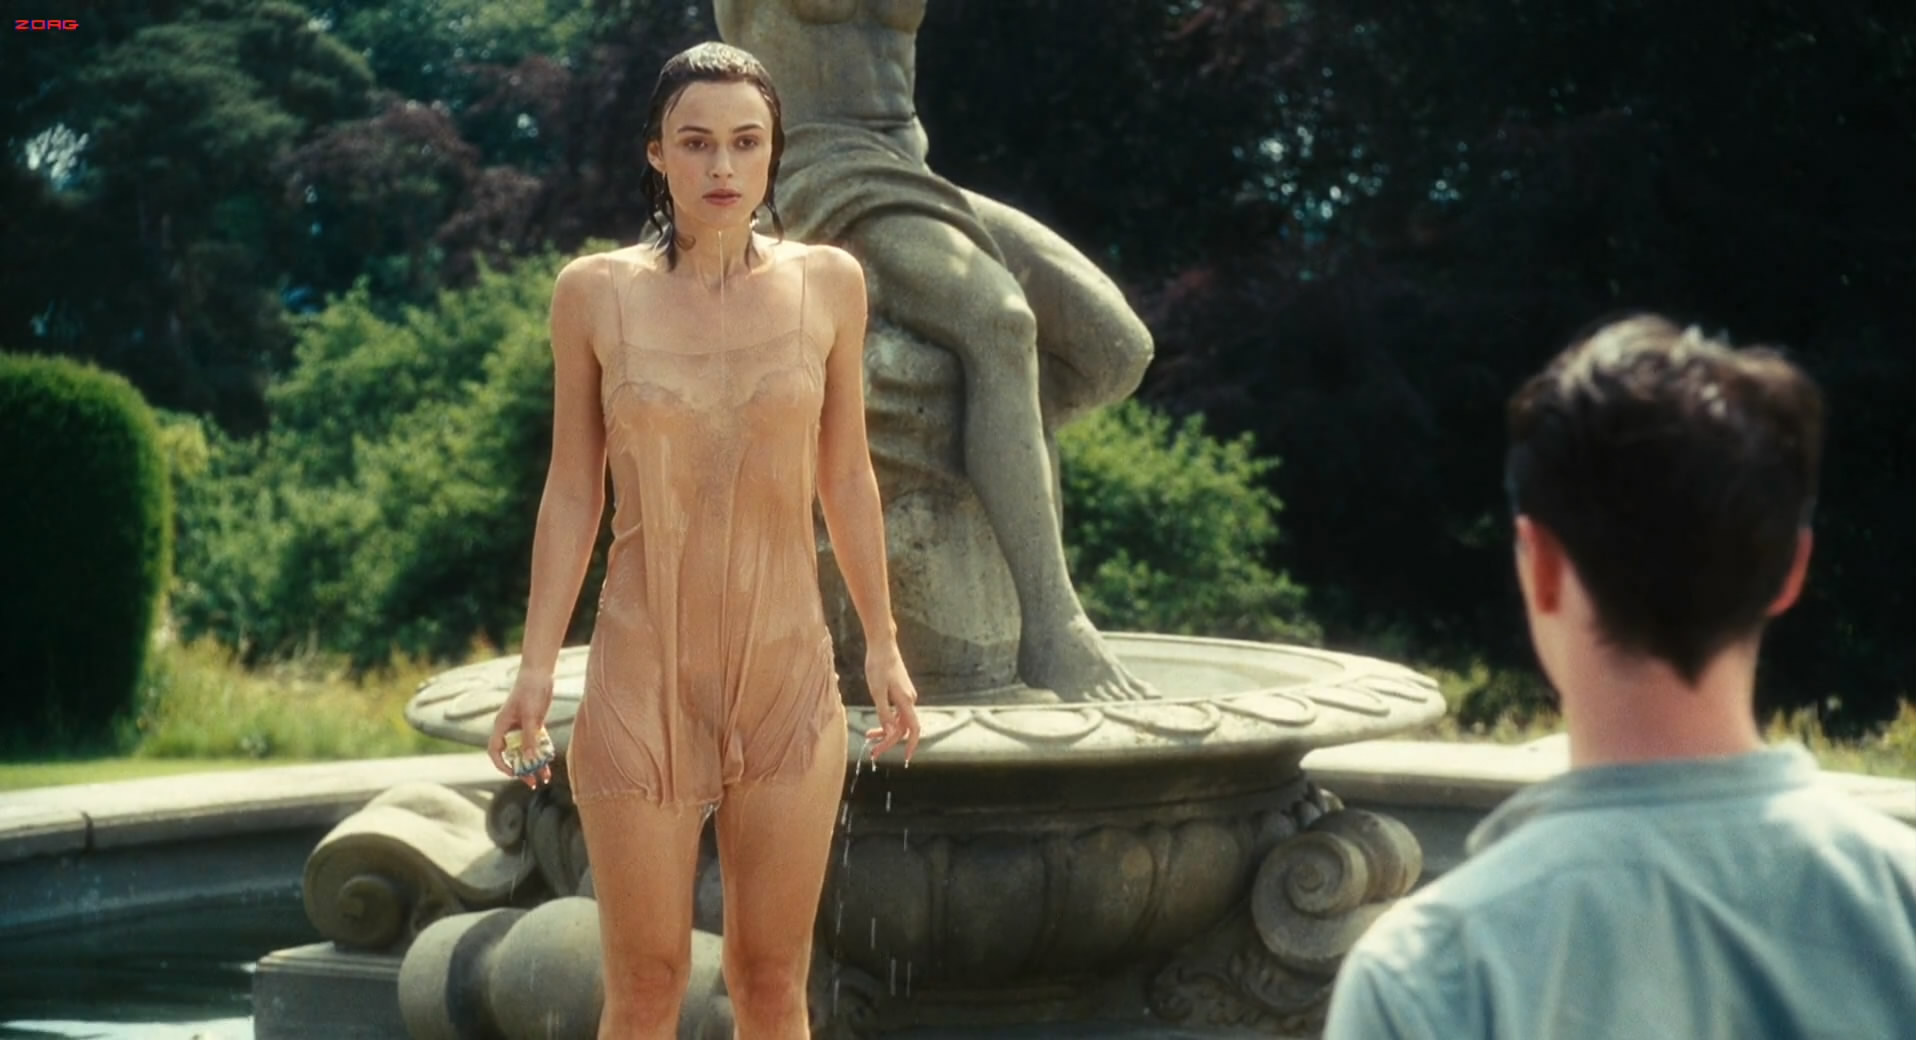 Keira Knightley cute and sexy pokies in Atonement